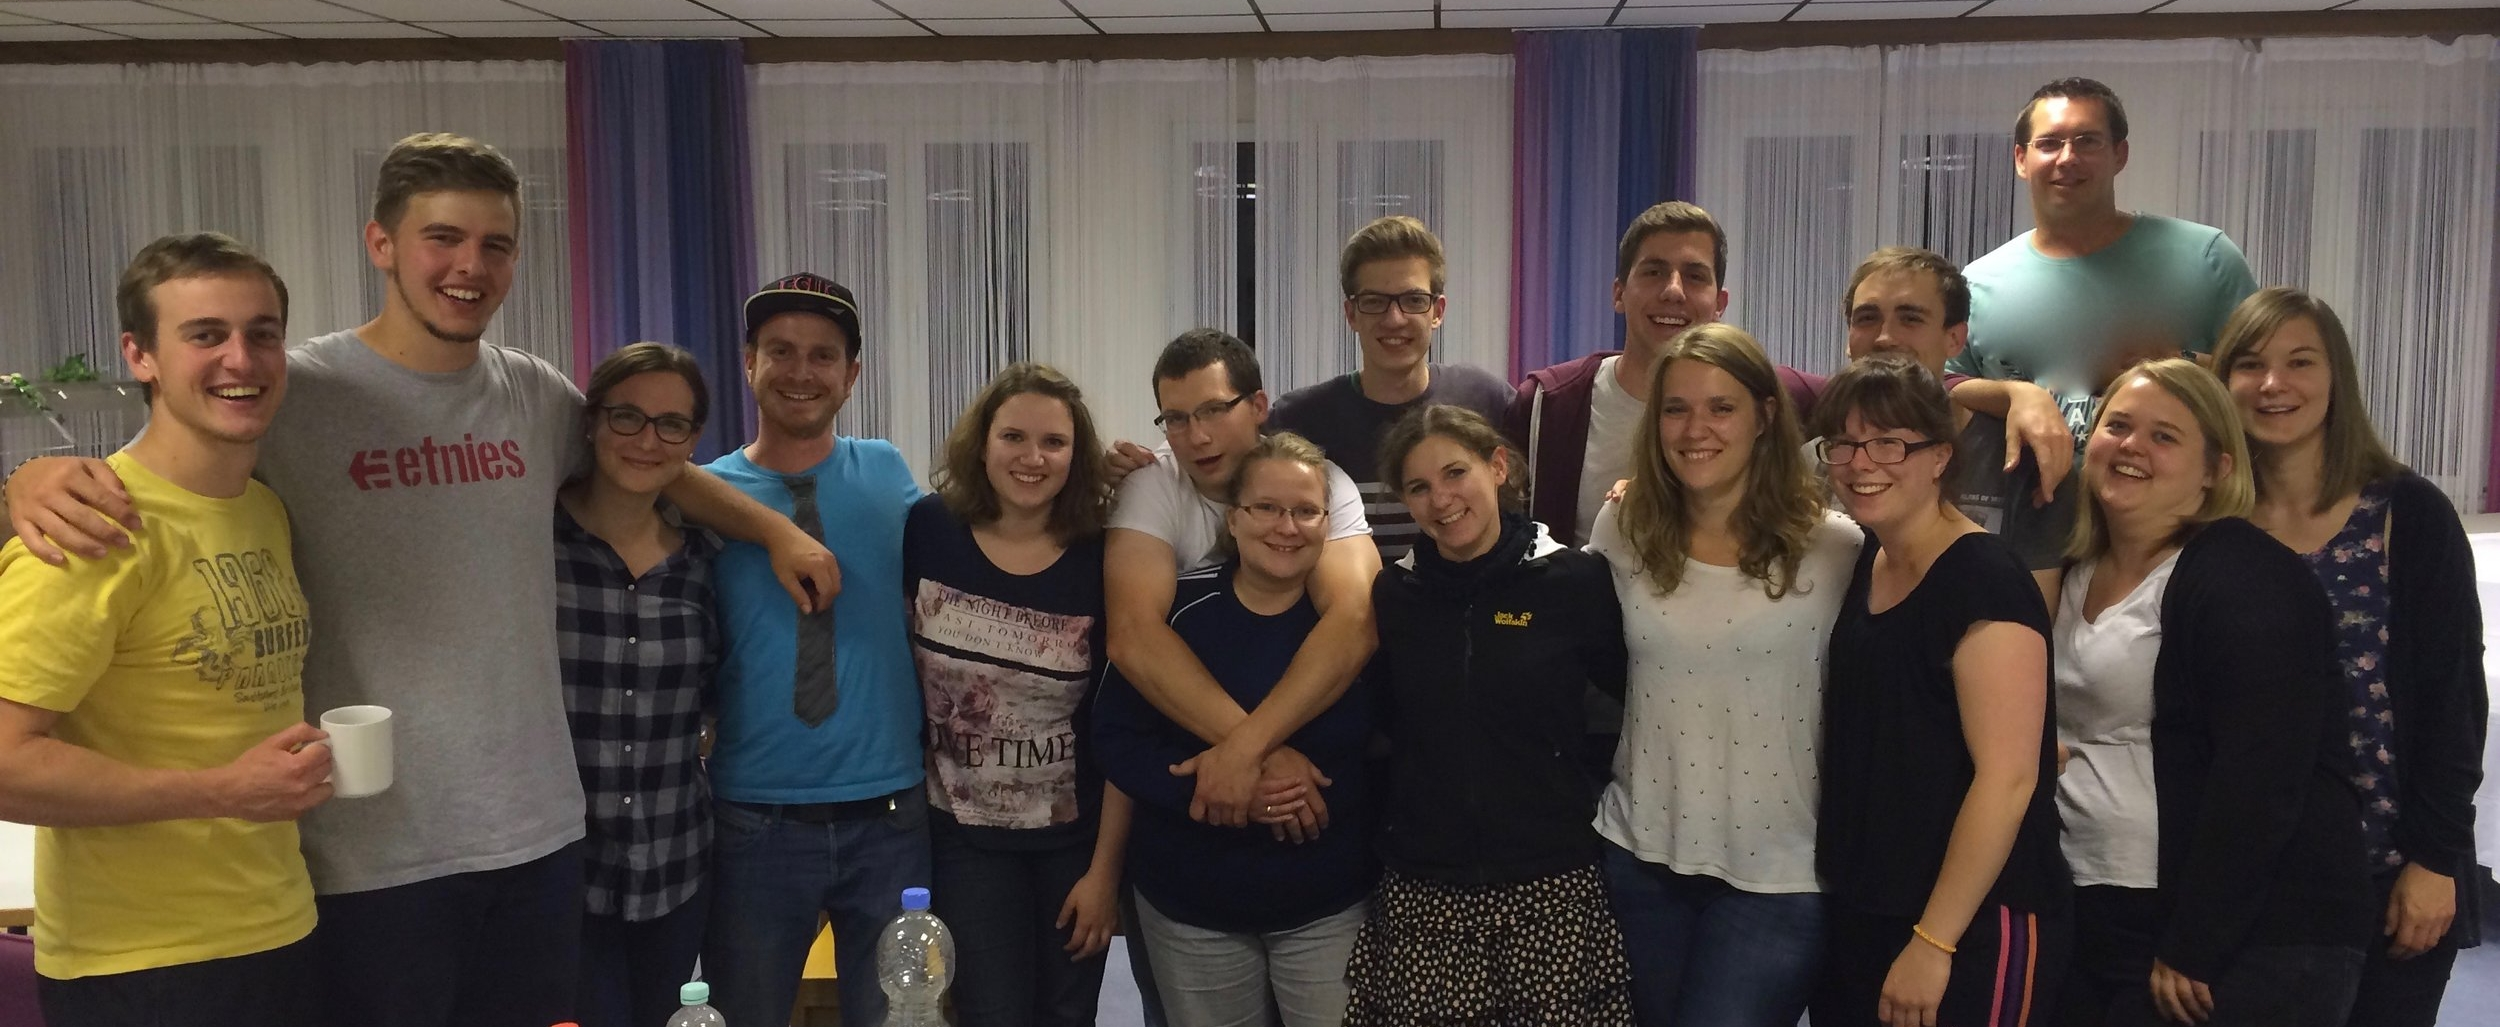 Part of the amazing team of Mittarbeiter that worked to carry out Teenfreitzeit 2016.